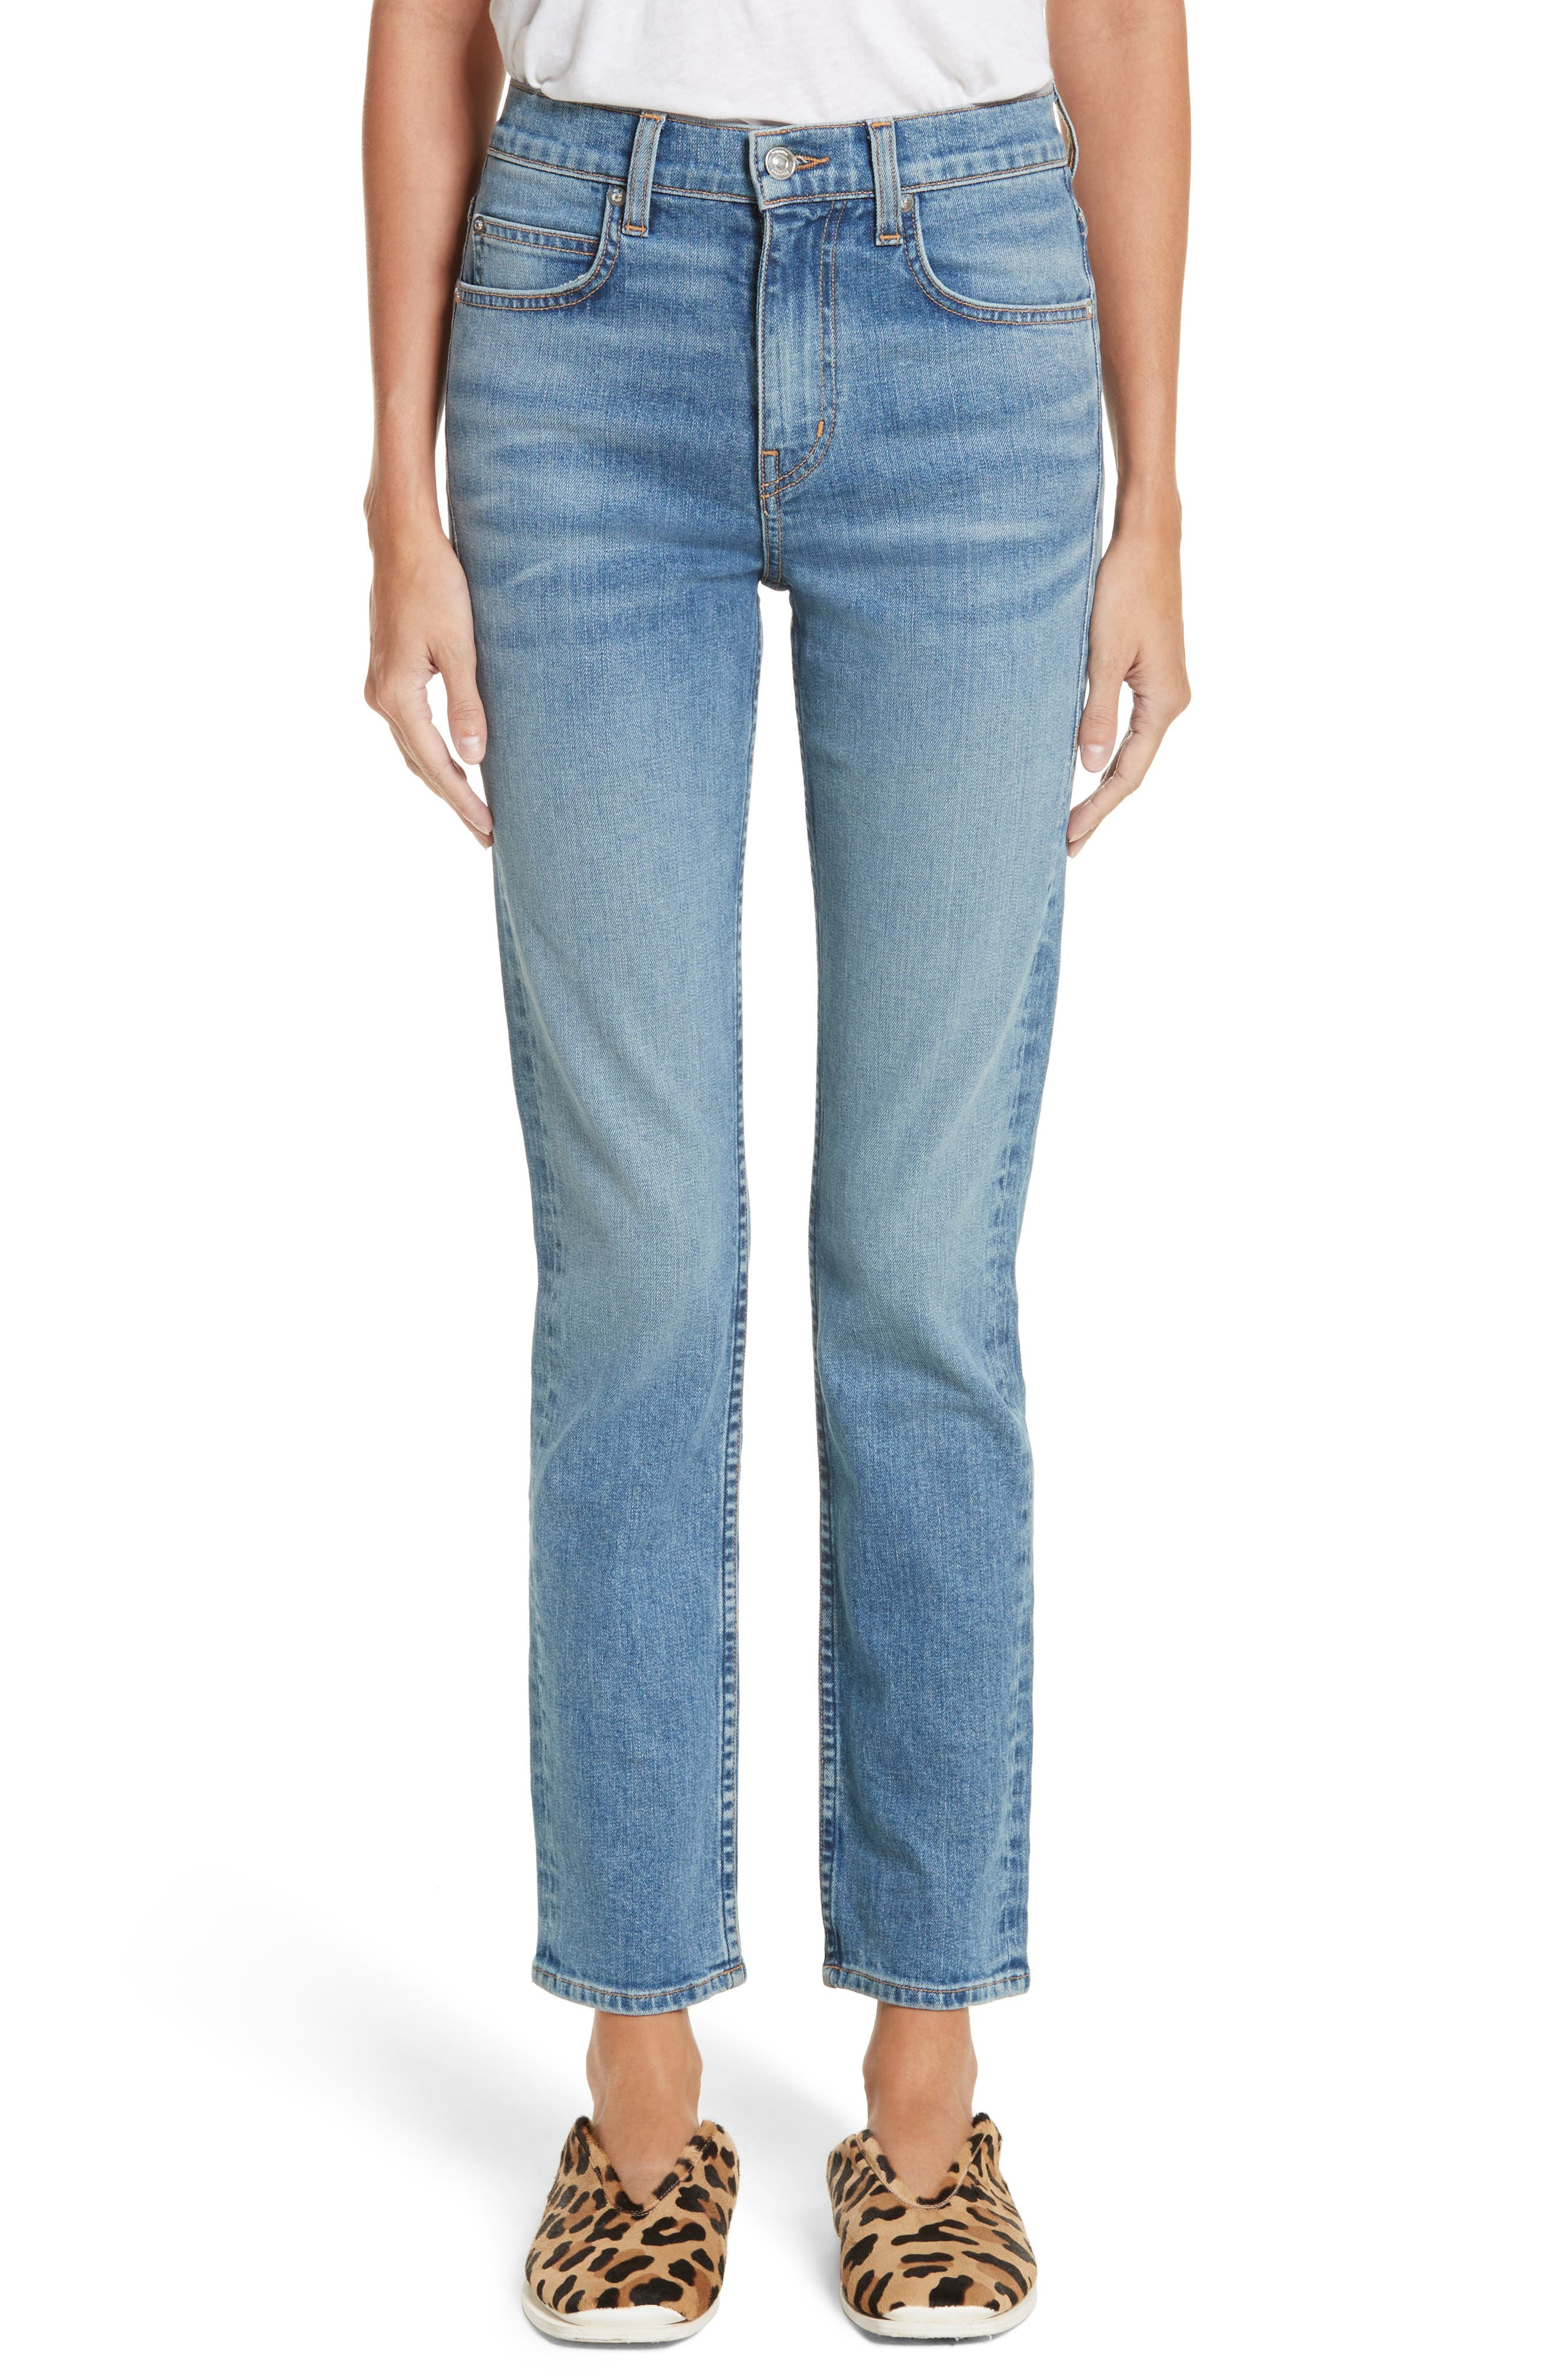 Alternate Image 1 Selected - Proenza Schouler PSWL Straight Leg Jeans